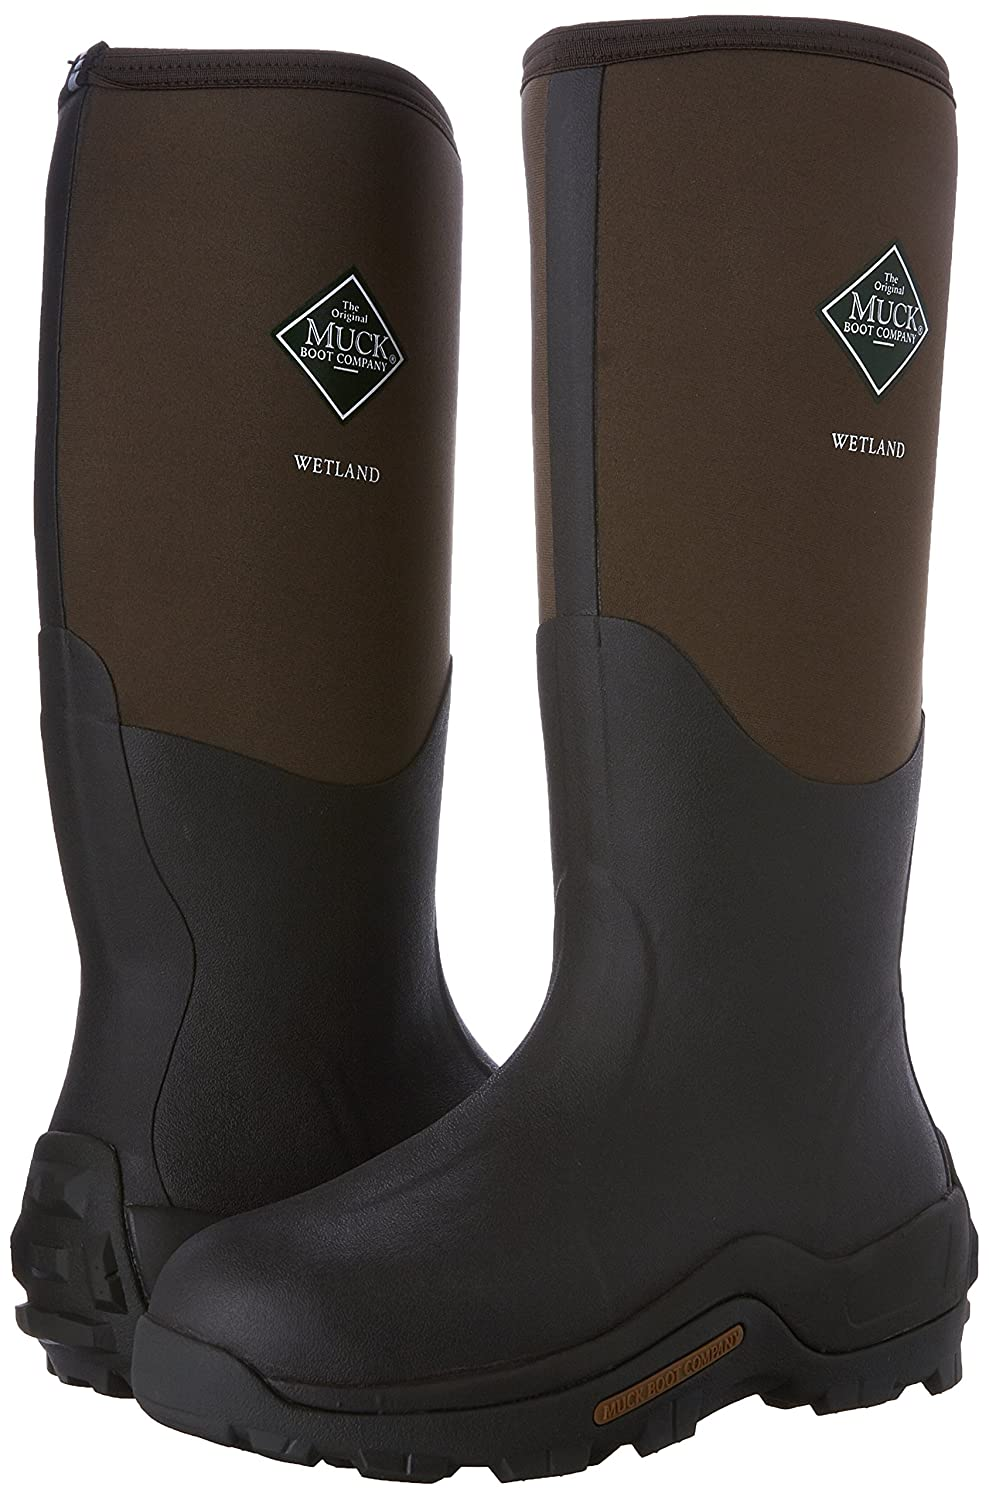 Muck Boots WETLAND Unisex Waterproof Wellington Boots Bark: Amazon ...